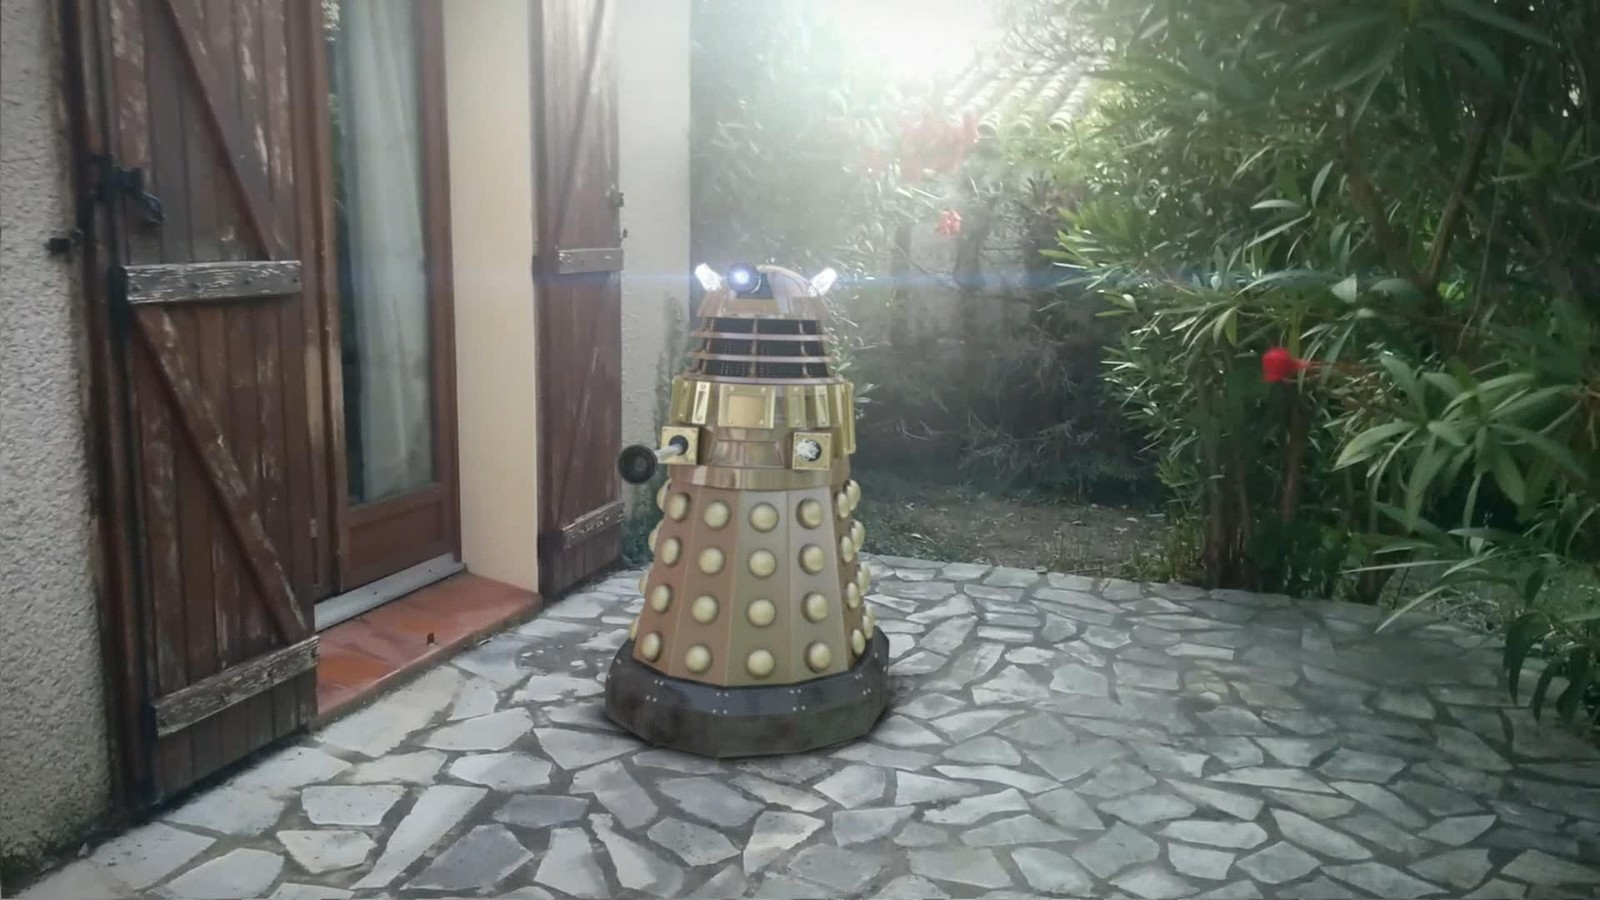 Dalek at Home